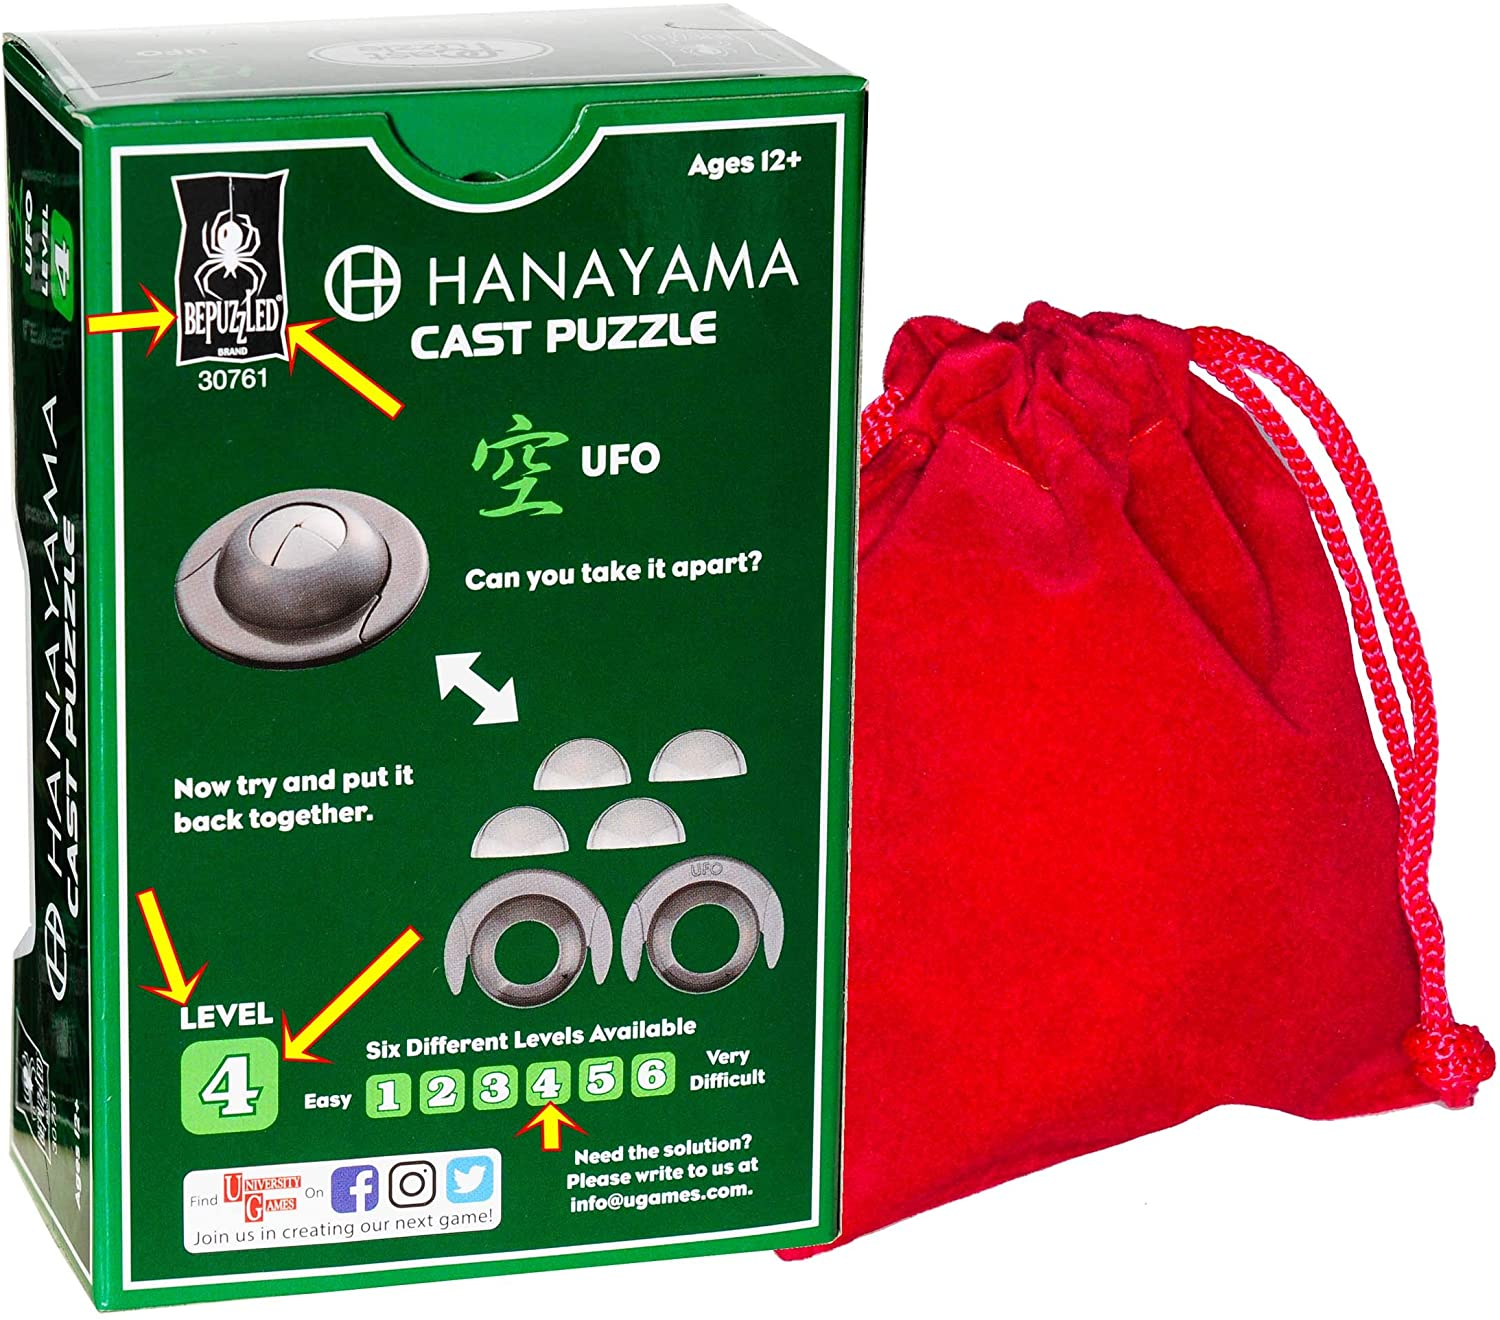 Level 4 Difficulty Rating UFO Hanayama Brain Teaser Puzzle New 2019 Release Bonus RED Velveteen Drawstring Pouch